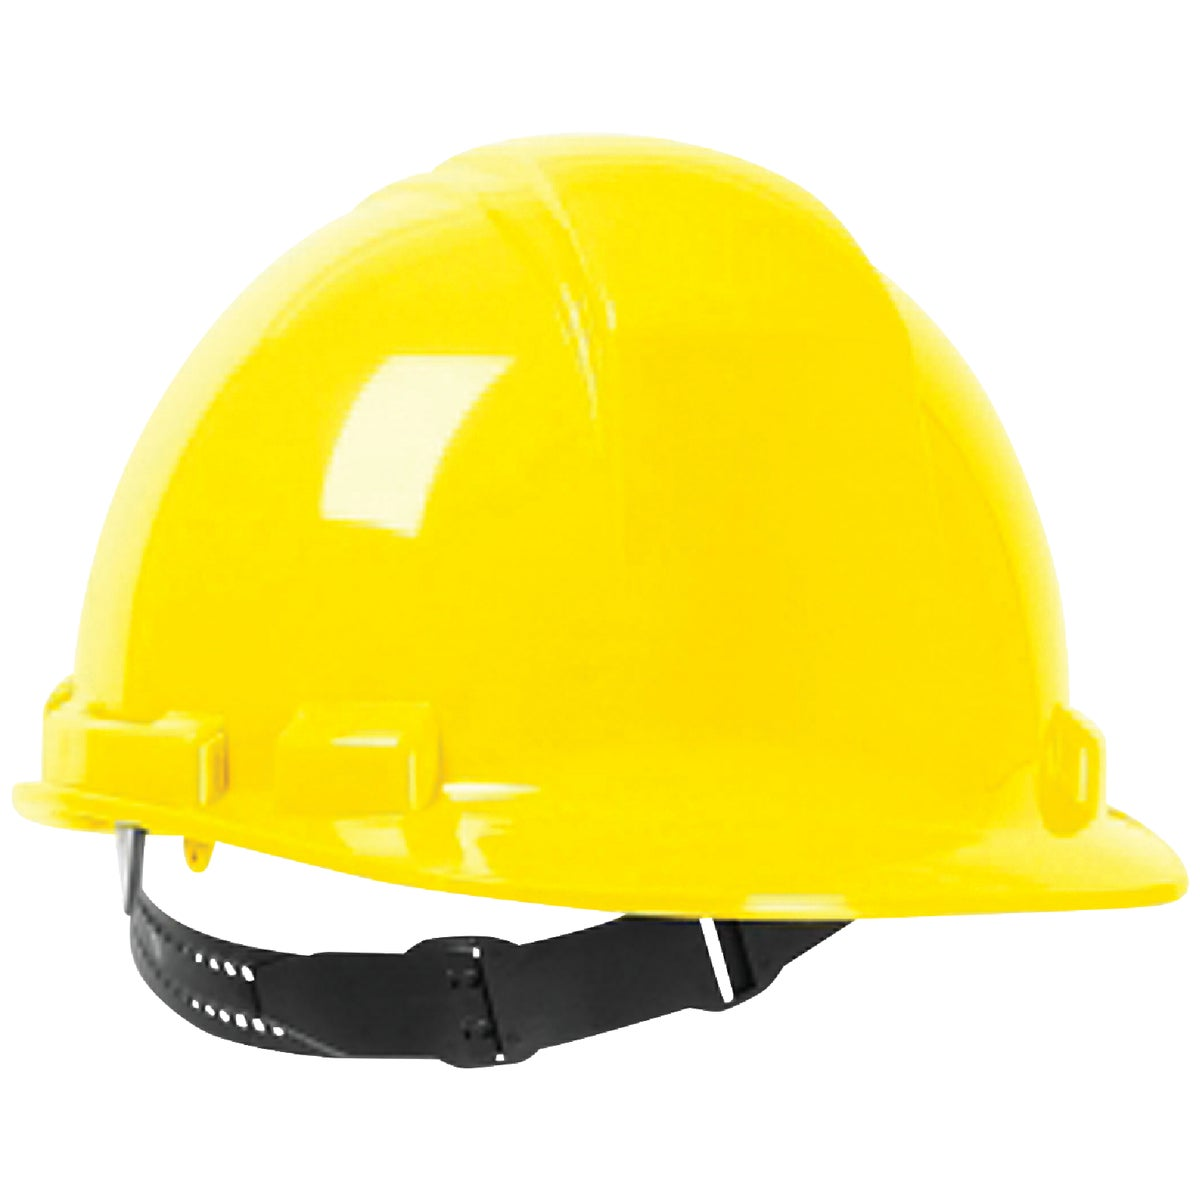 YELLOW HARD HAT - 818068 by Msa Safety